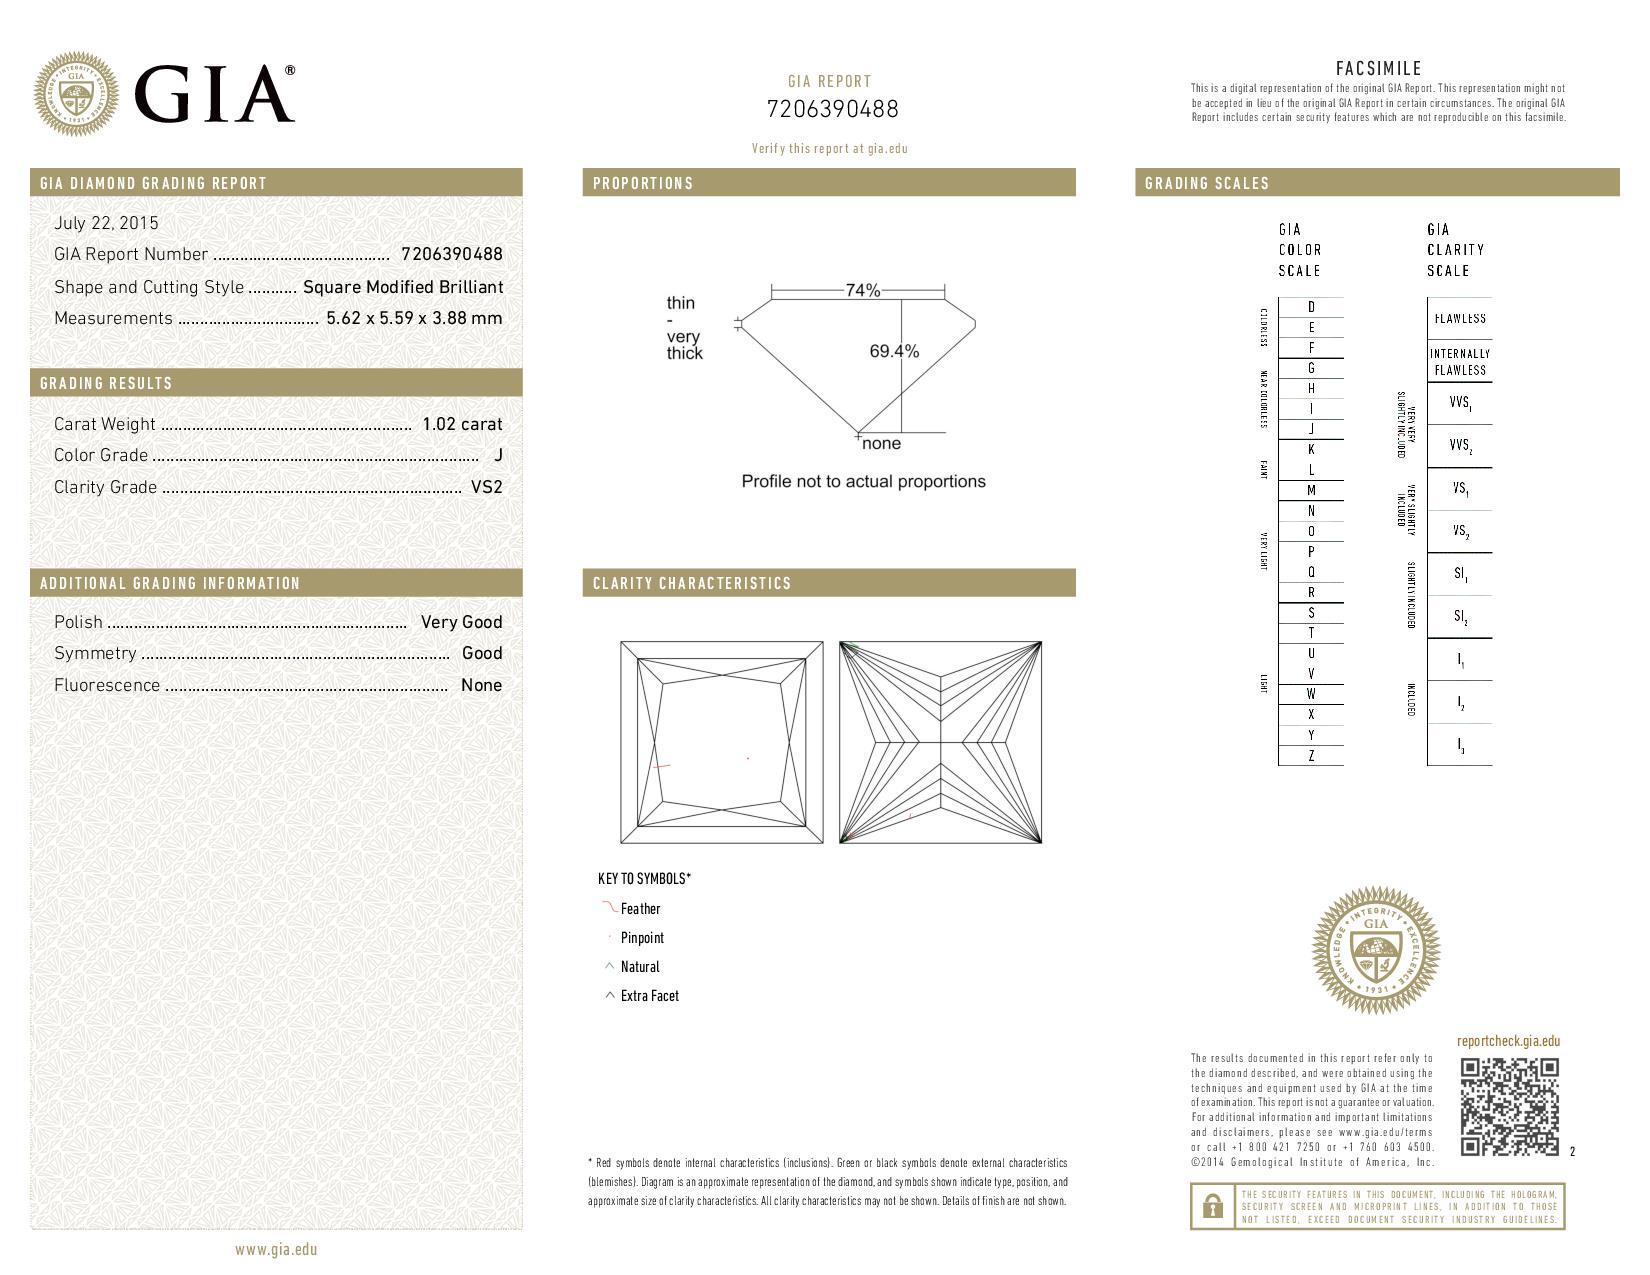 This is a 1.02 carat princess shape, J color, VS2 clarity natural diamond accompanied by a GIA grading report.